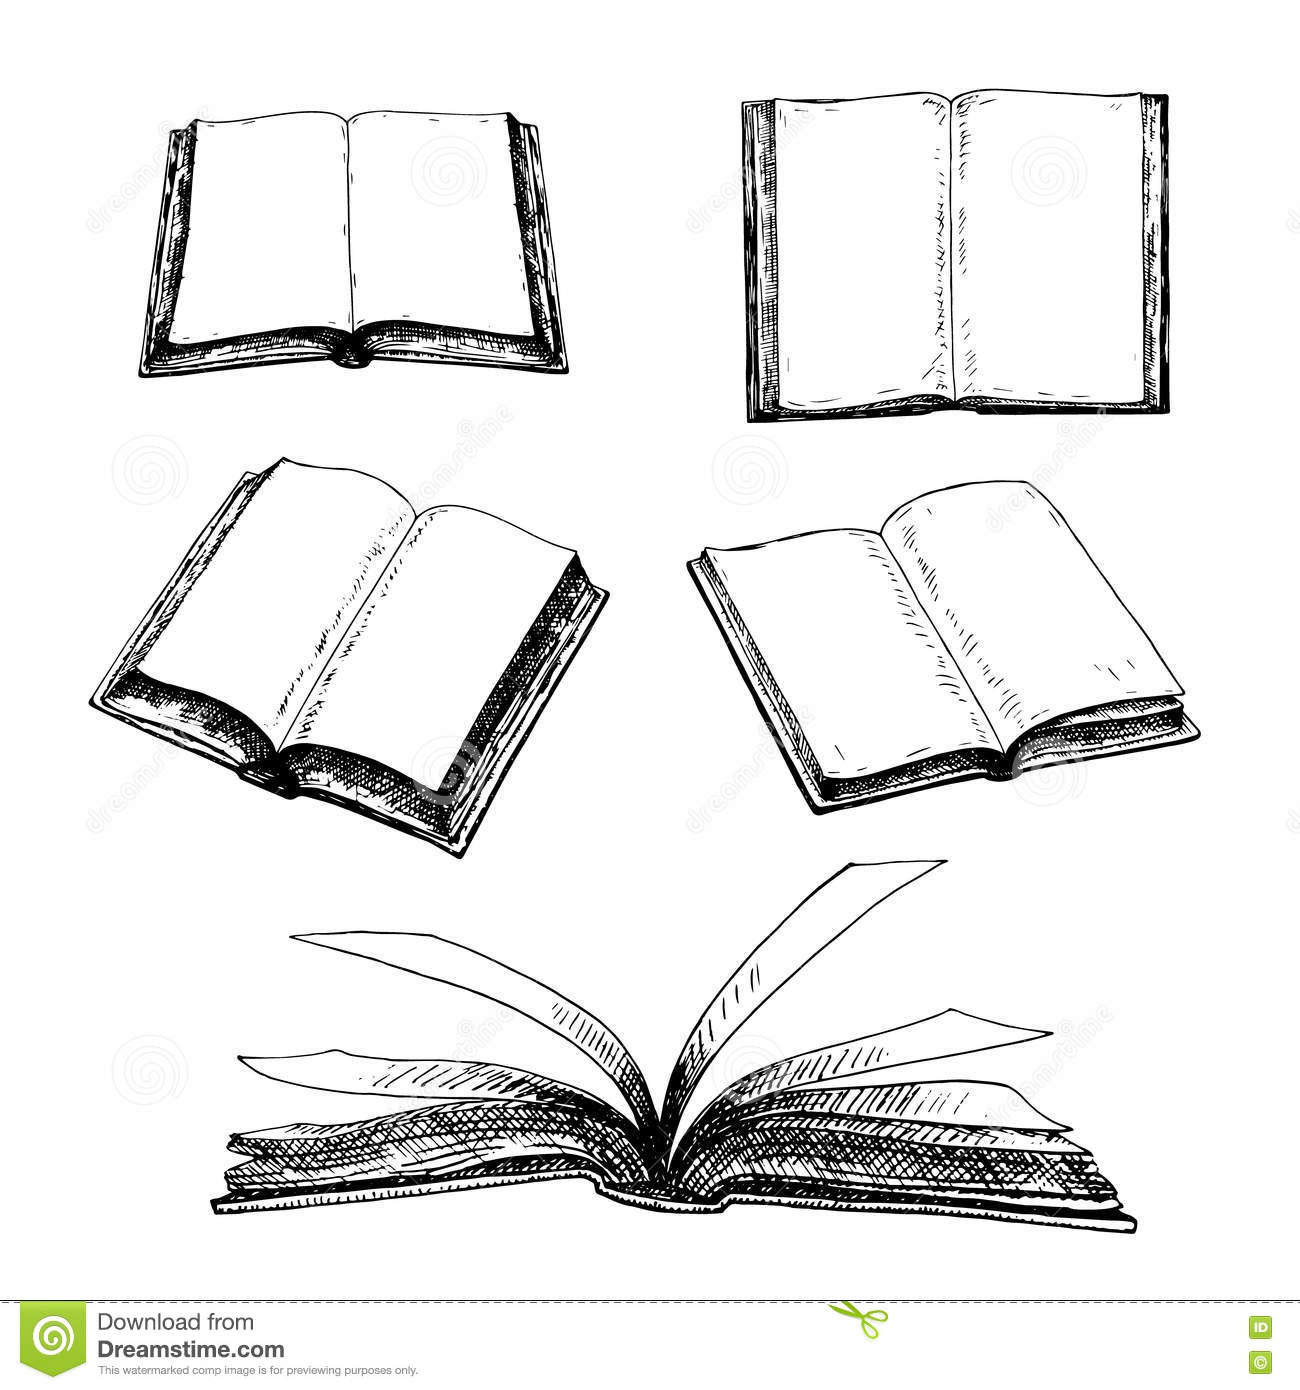 Drawing Lines With Core Graphics : Vector hand drawn books illustration